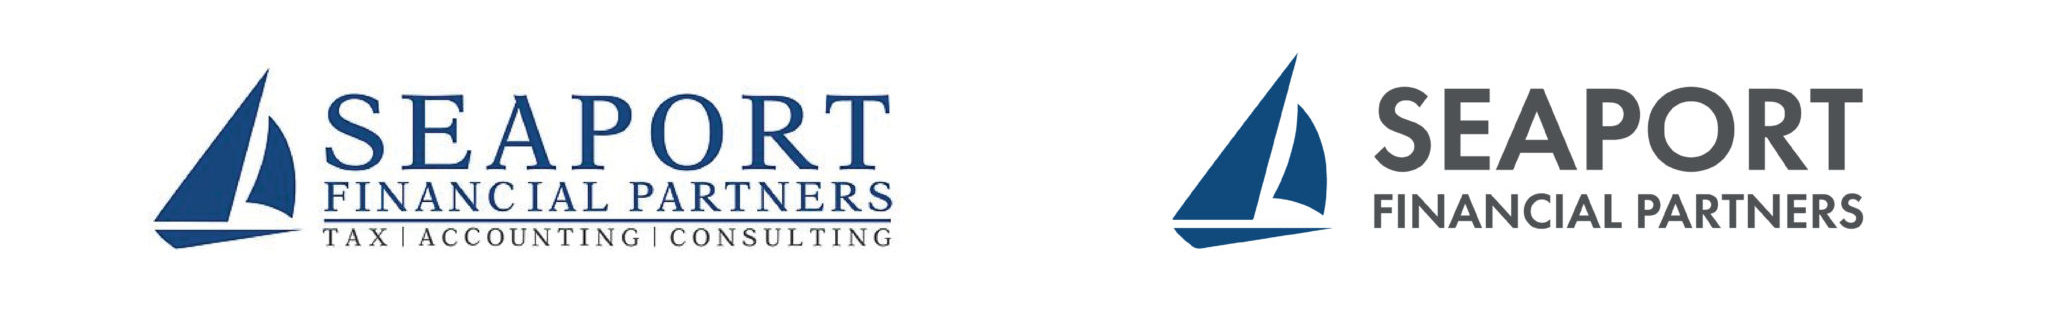 Seaport-Logo-BeforeAfter